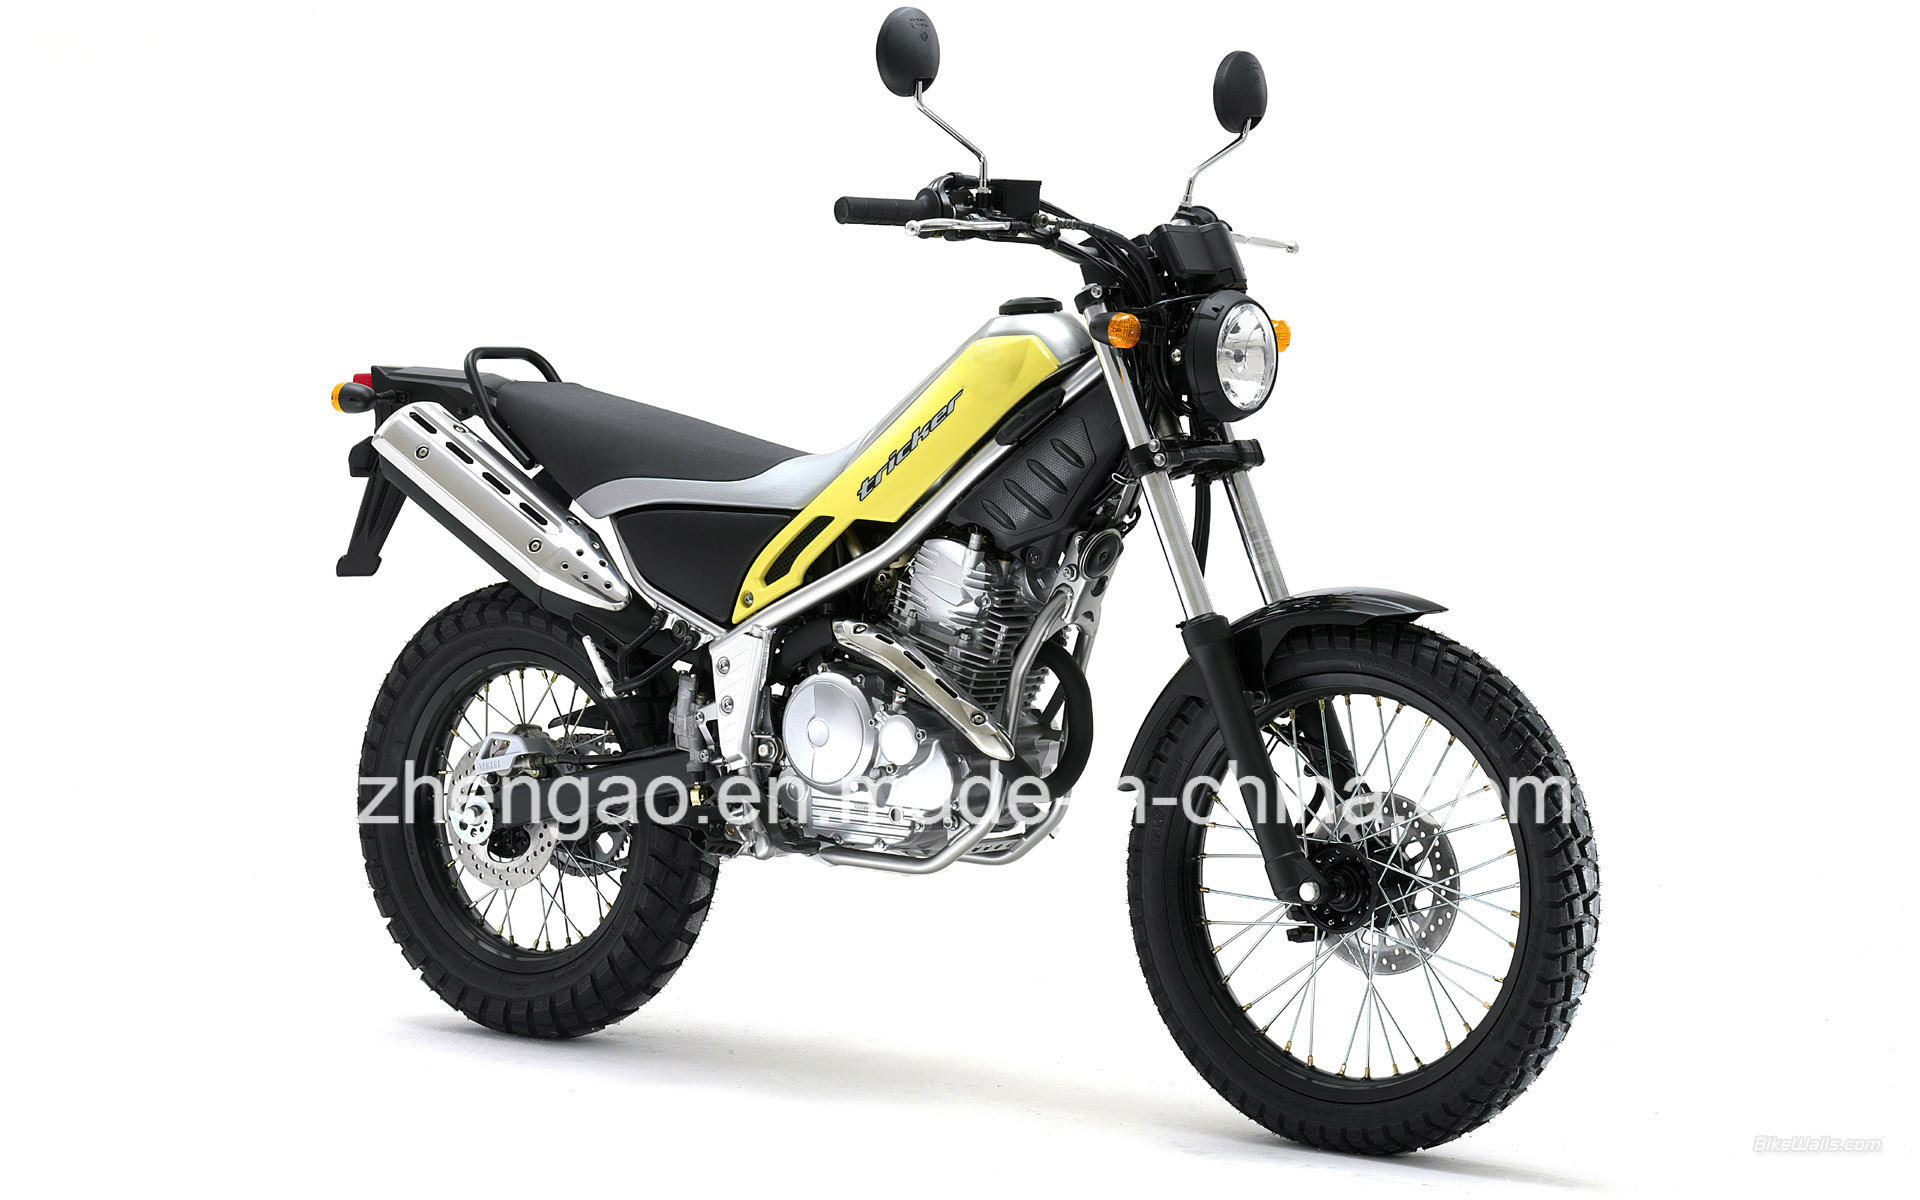 250cc Yamaha Motorcycle Tricker Manufacturers Factories